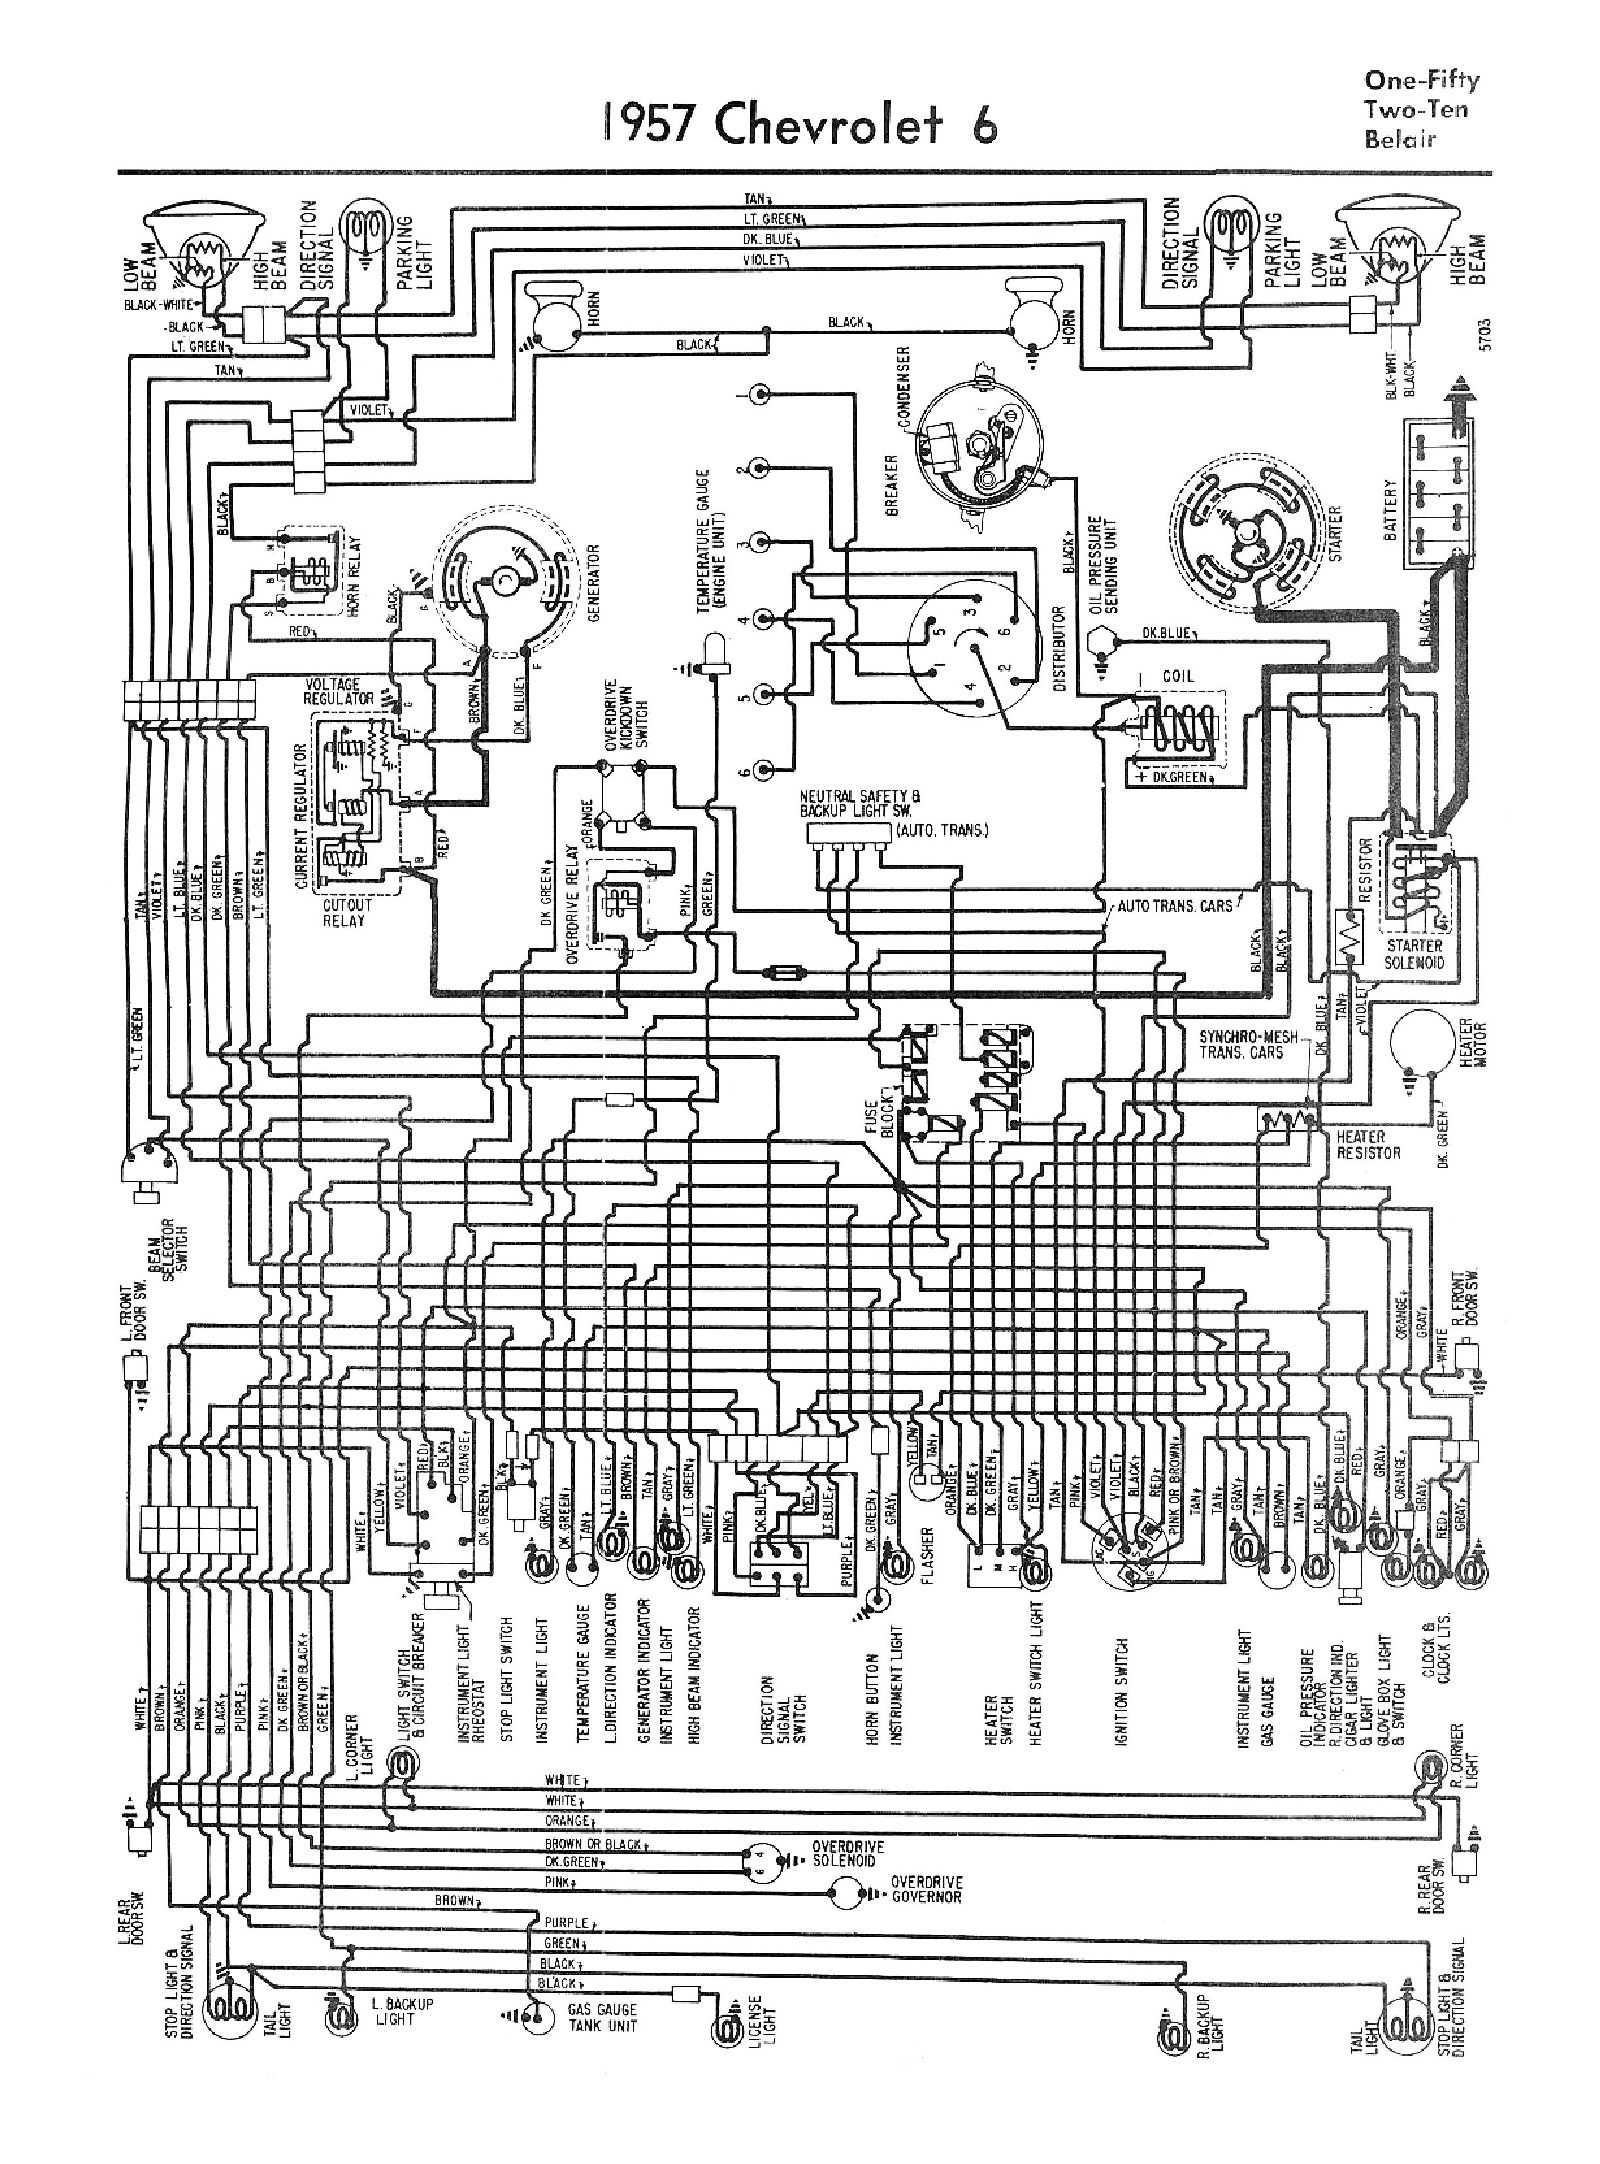 c3 wiring diagram ceiling fan with light c1 data chevy diagrams thoracic vertebrae 1957 car 6 cylinder